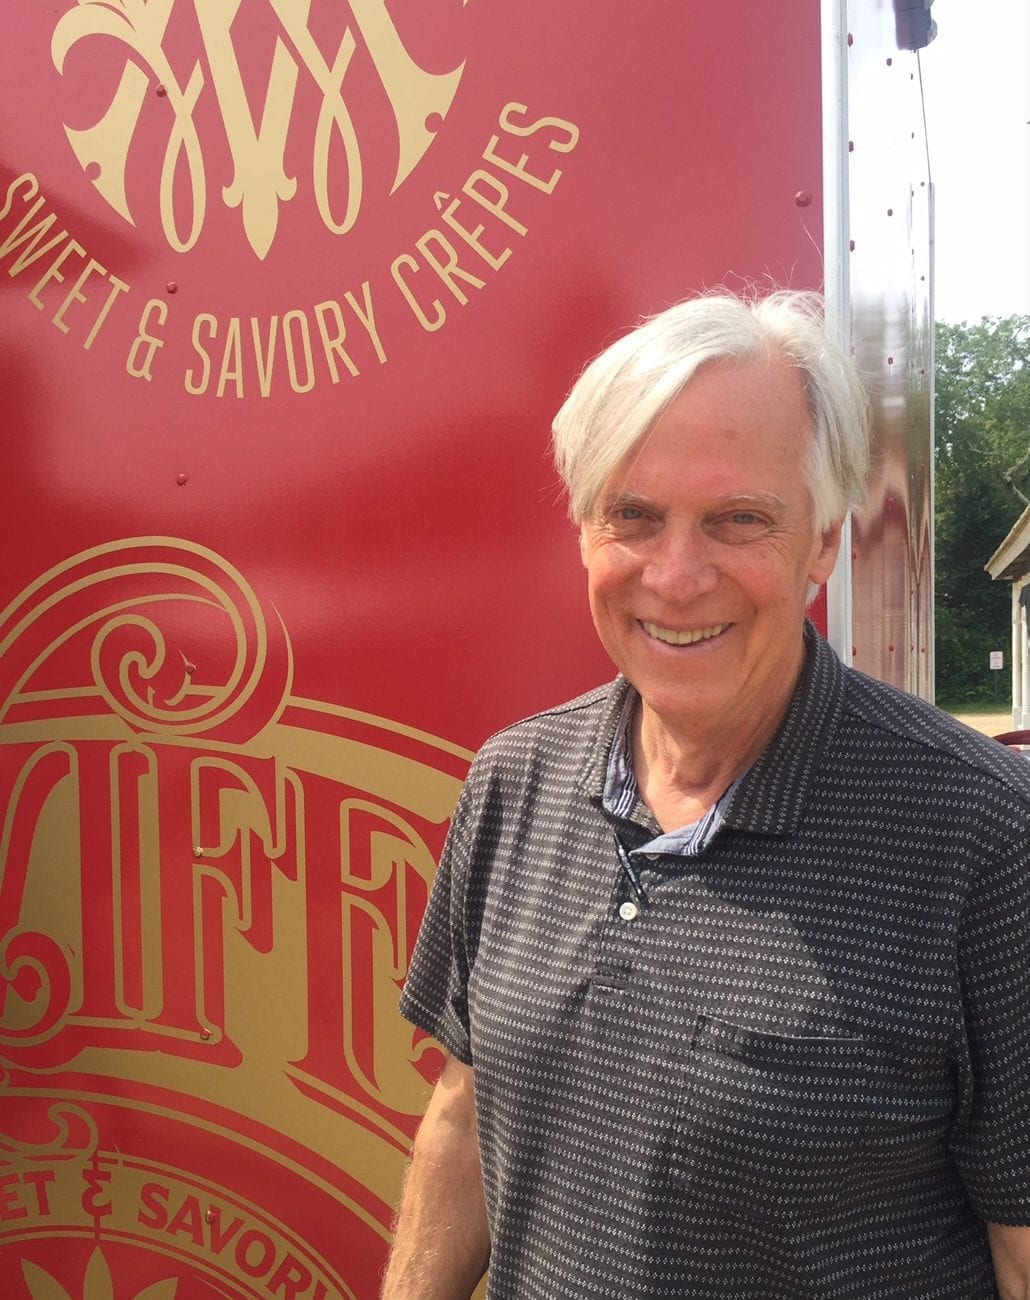 Glenn Roberts, the owner of Anson Mills, The Miller's Wife Crêpes Martha's Vineyard